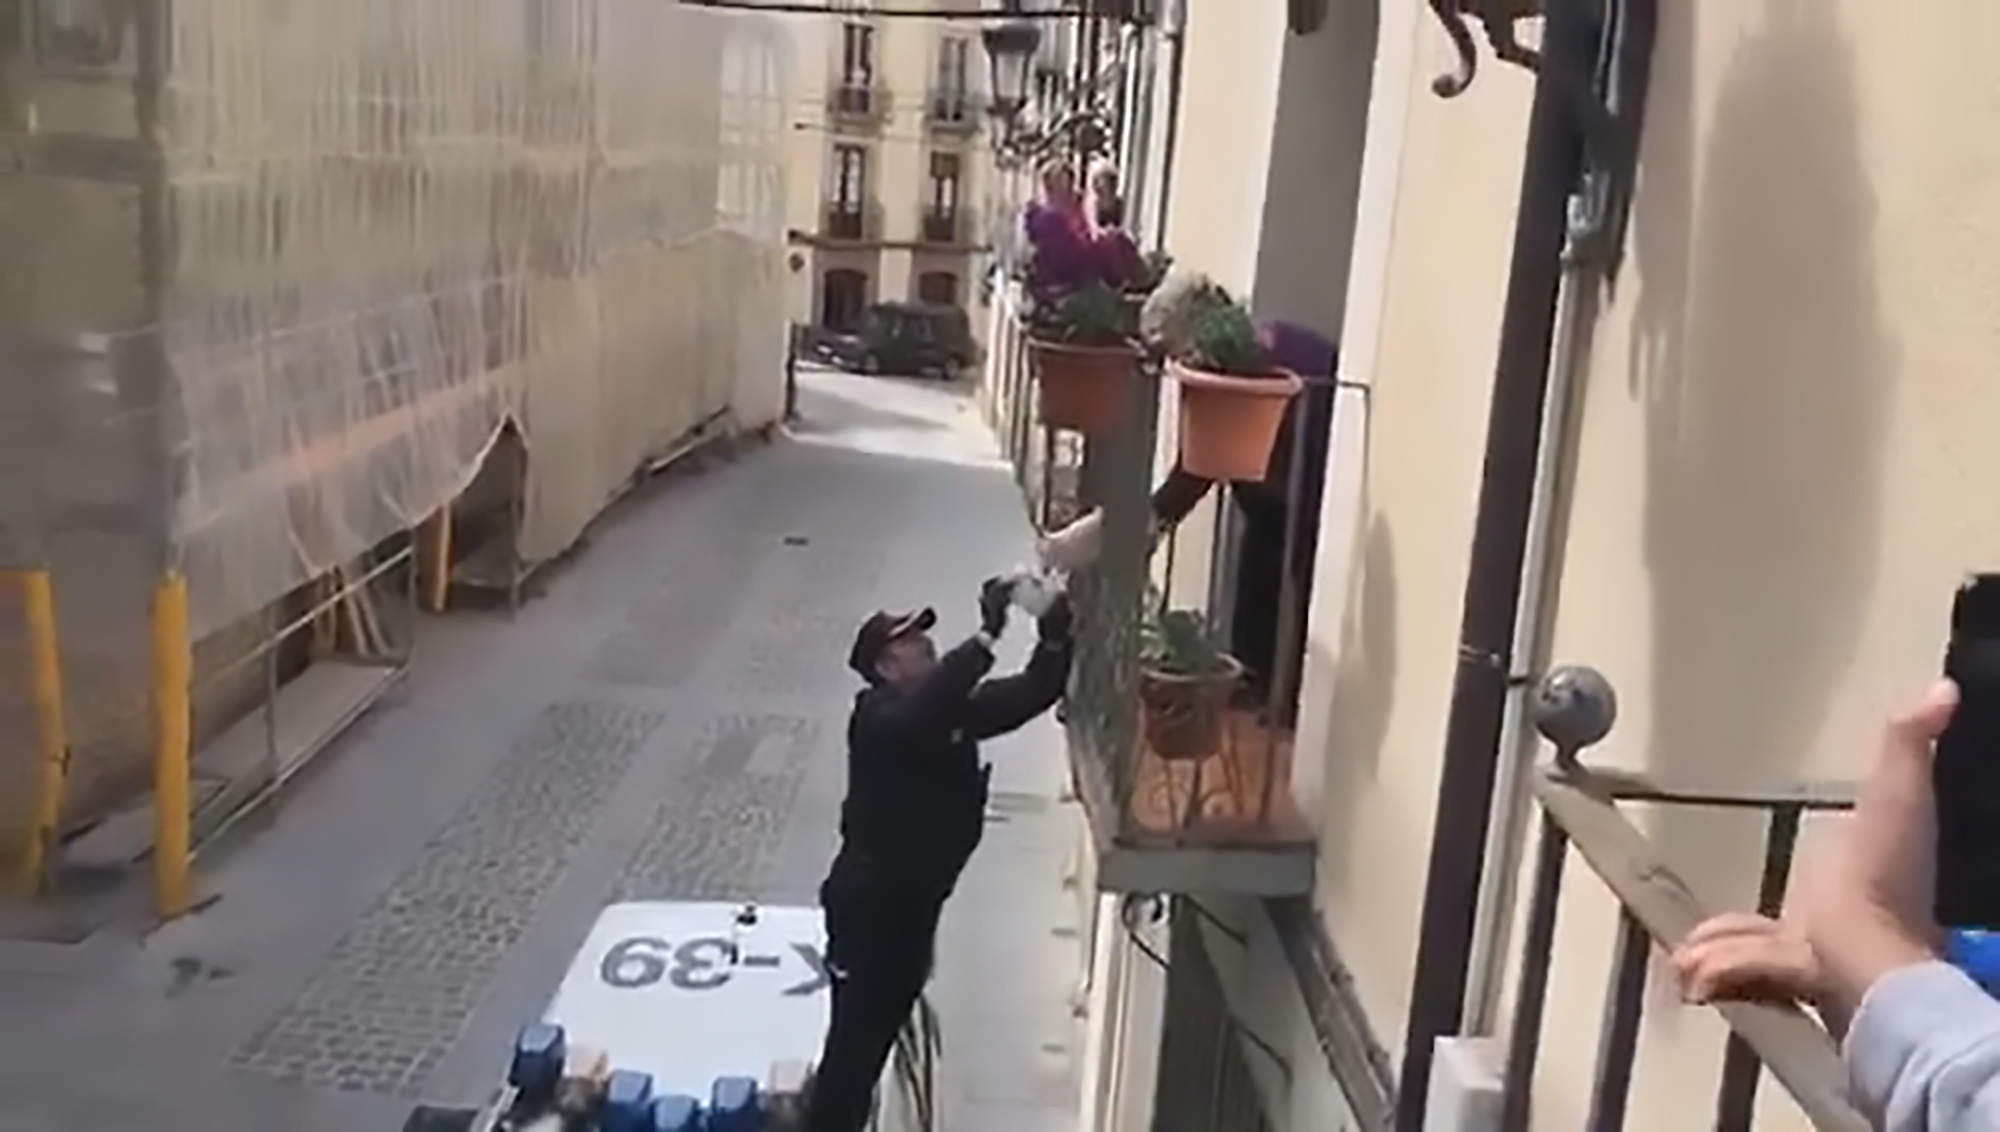 Police officer handing sweets to pensioner